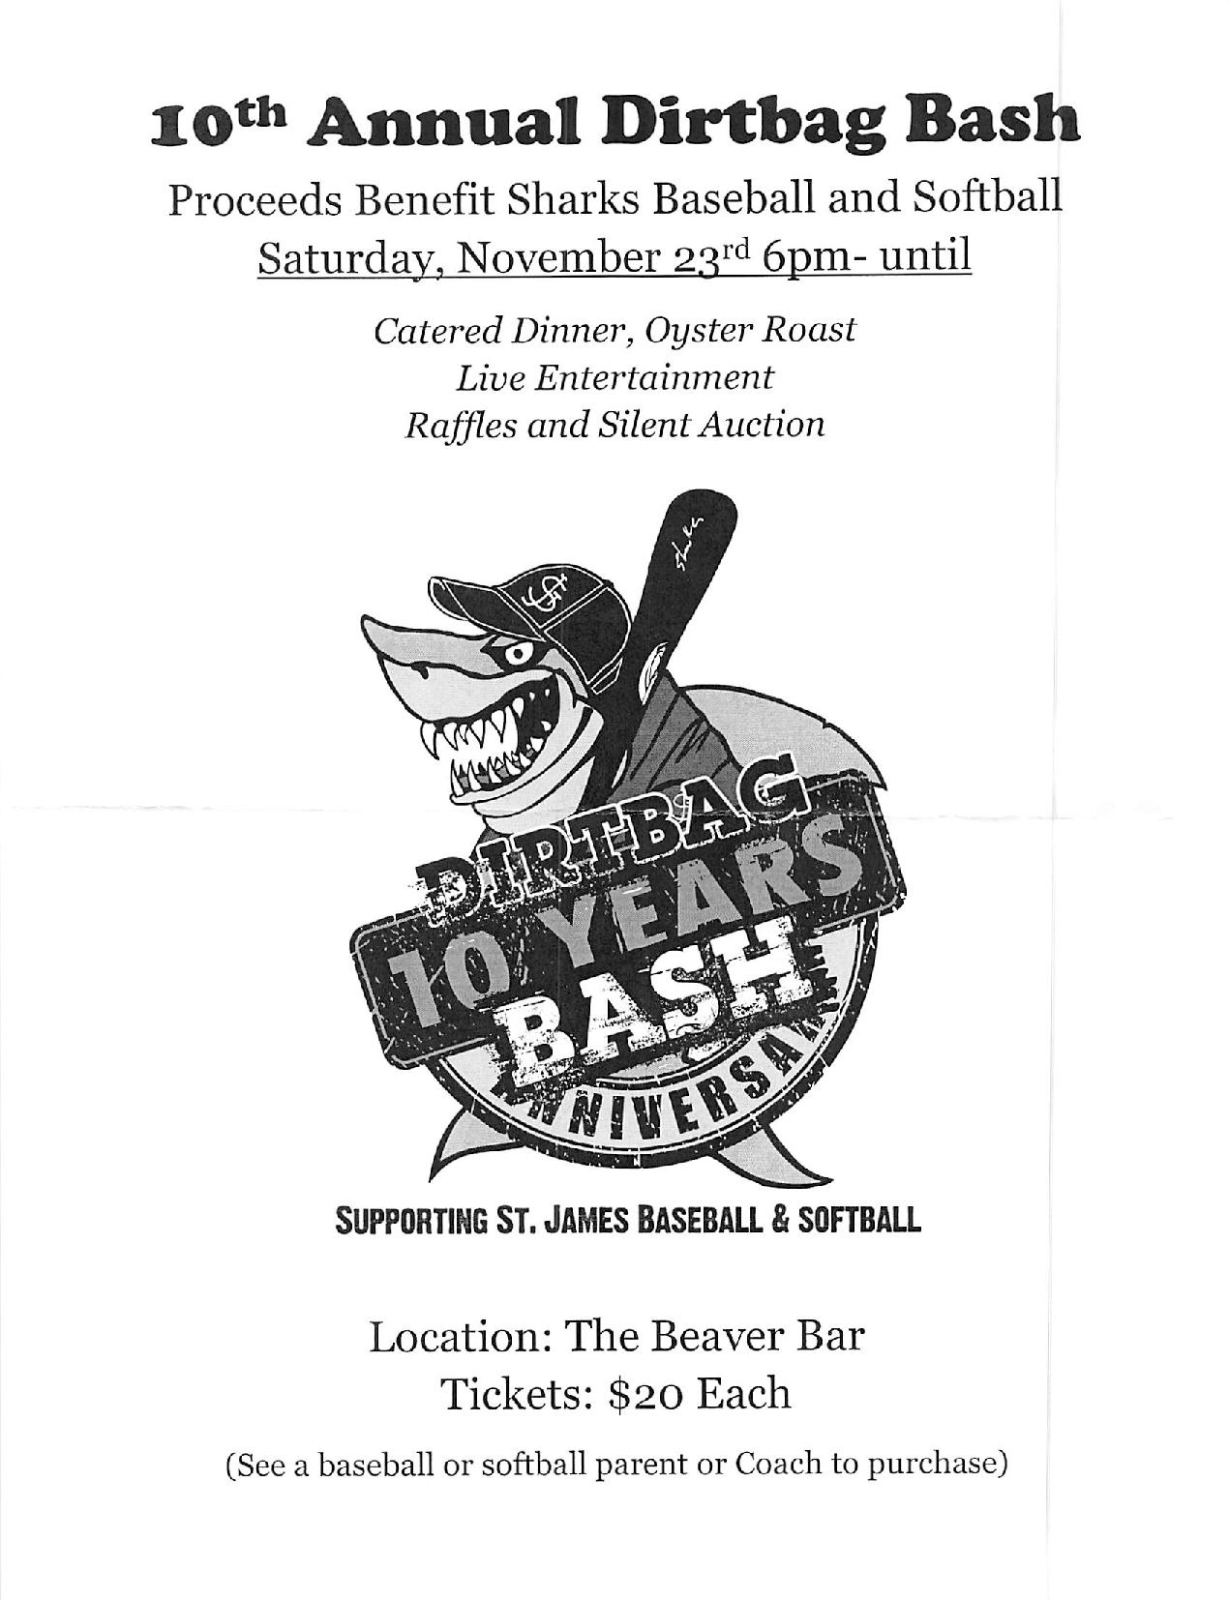 10th Annual Dirtbag Bash